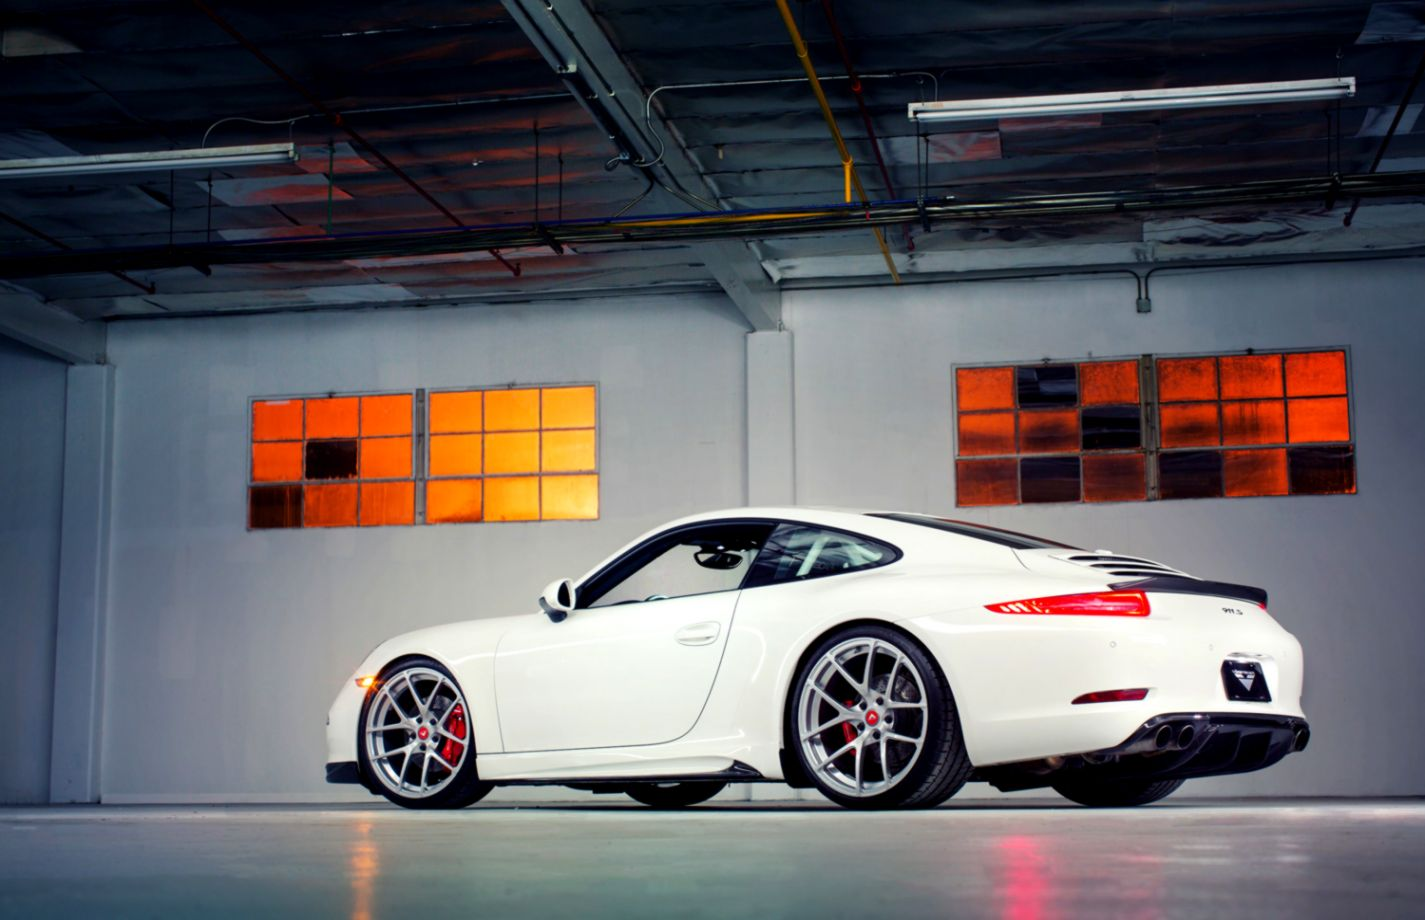 Porsche 991 Carrera Car Wheels Tuning Hd Wallpaper Wallpapers 1080p